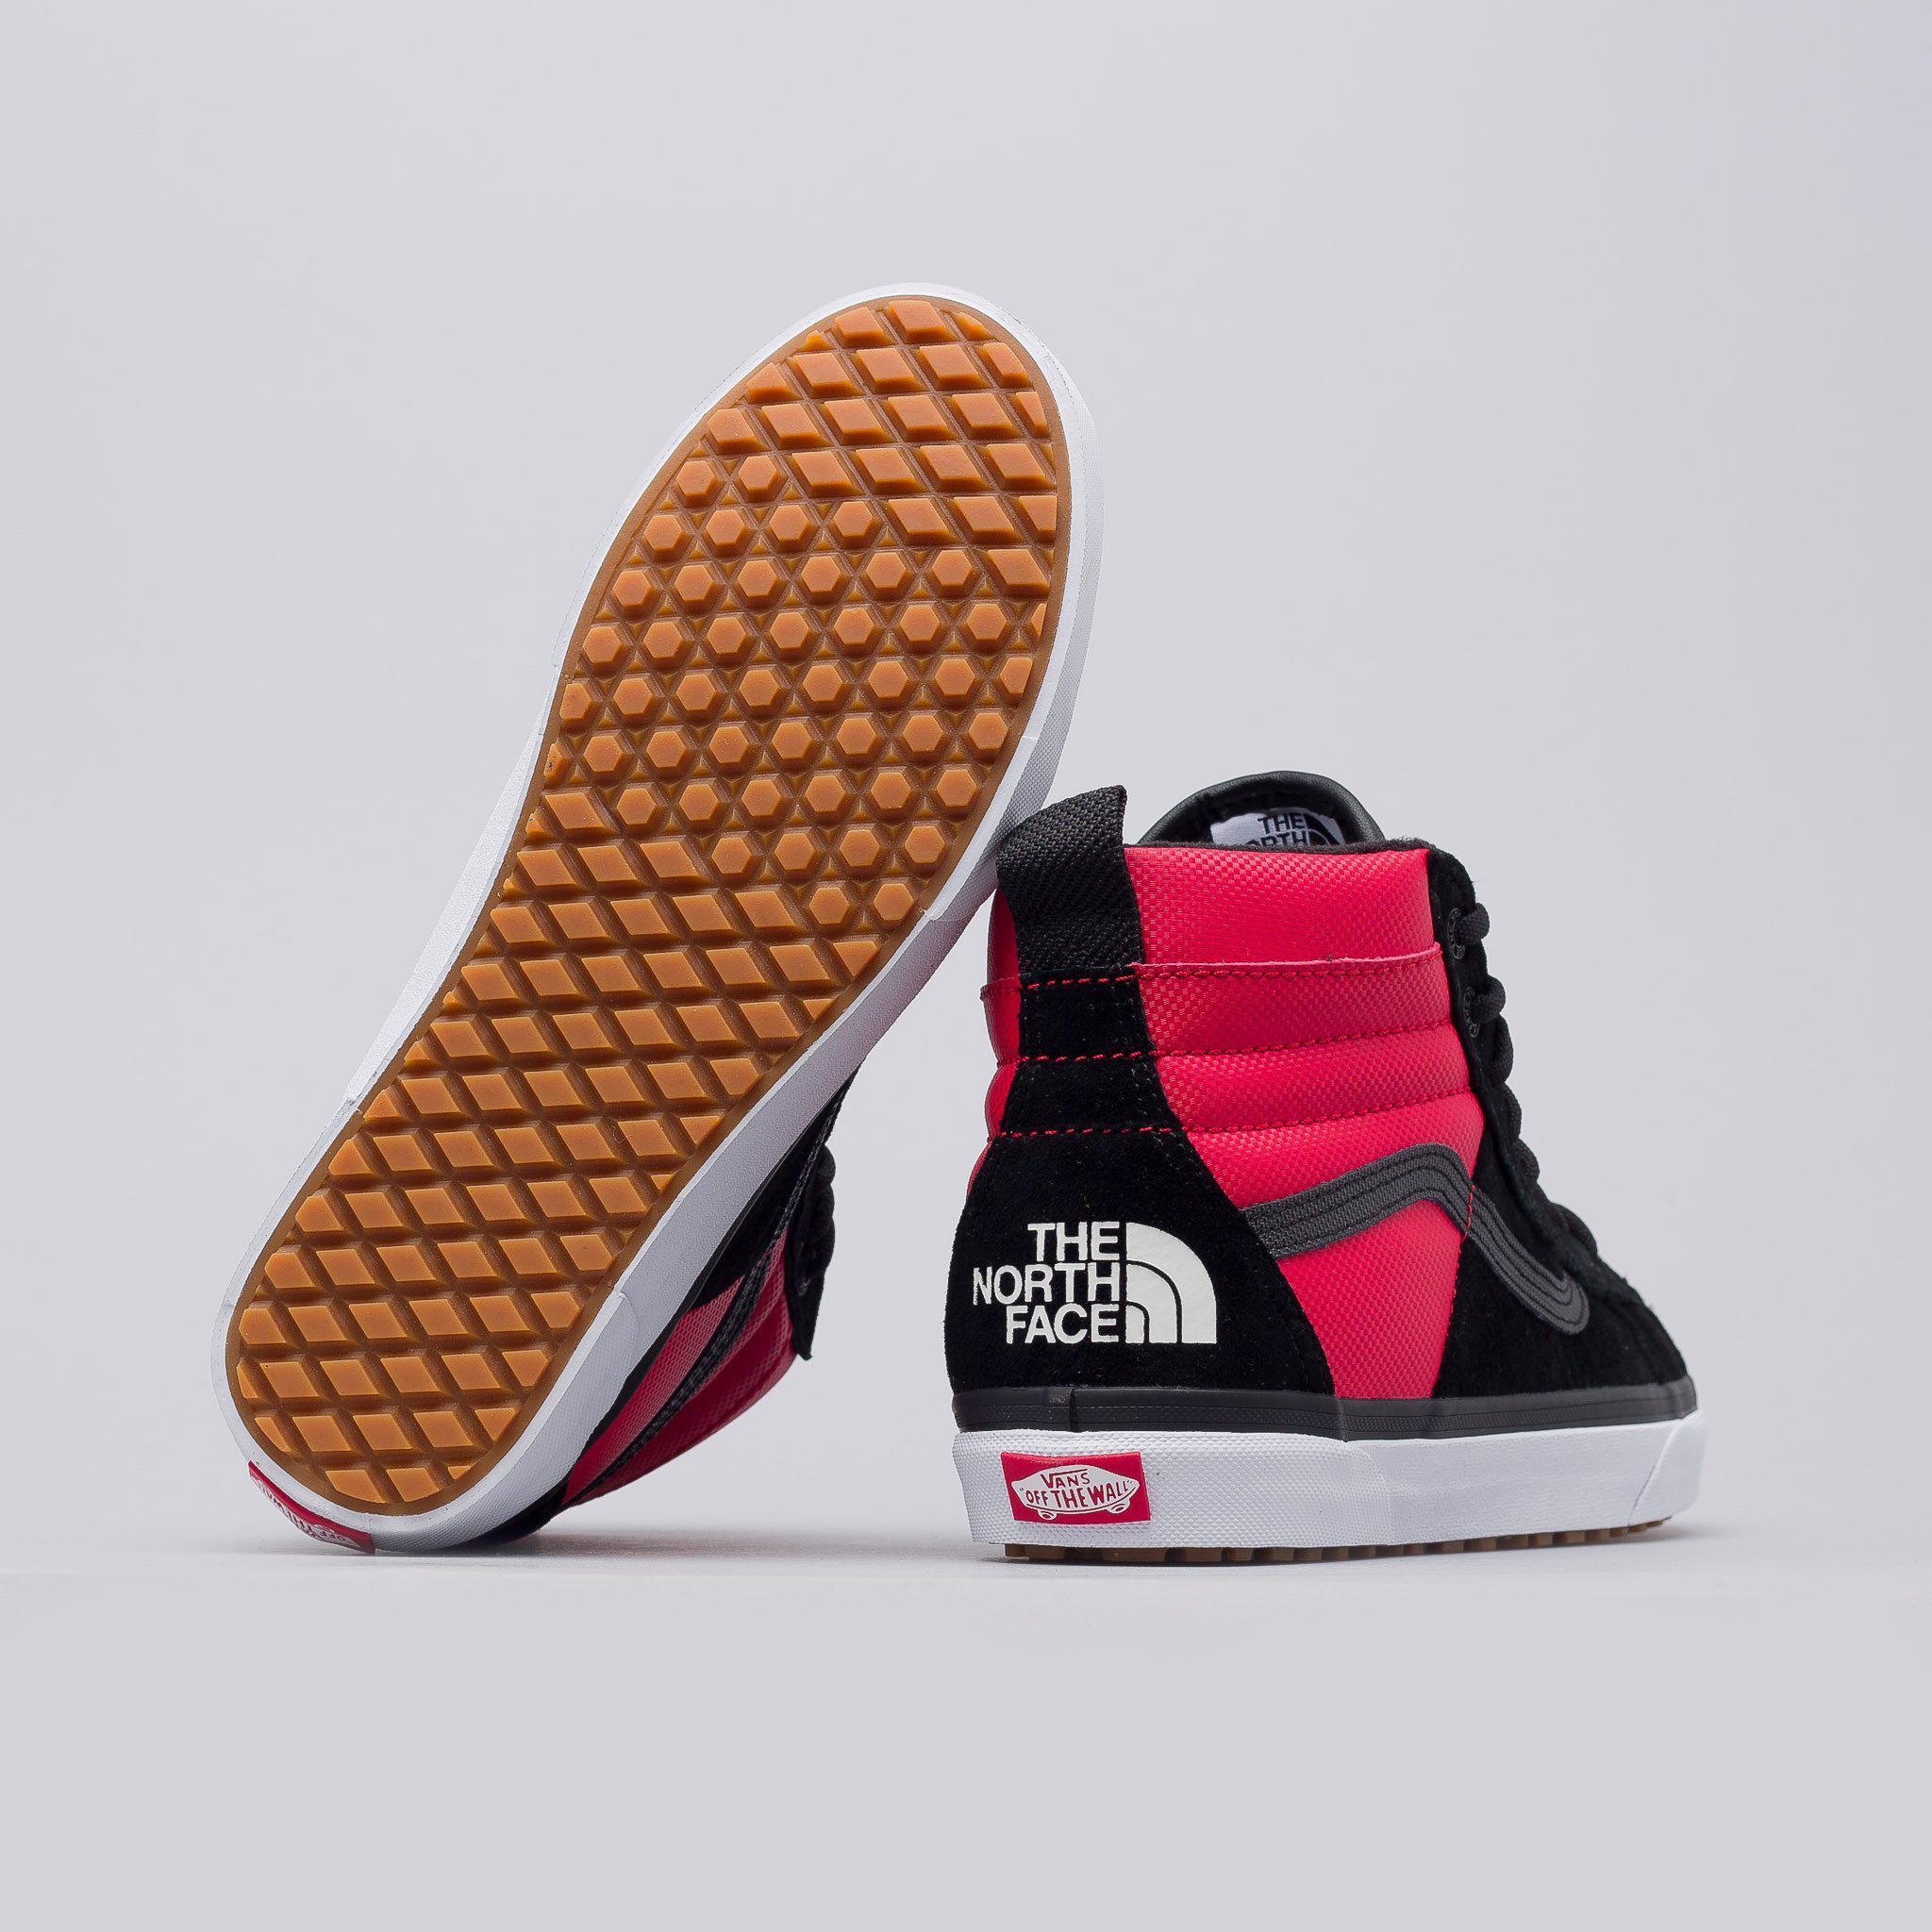 e037ef3070b Lyst - Vans X The North Face Sk8-hi 46 Mte Dx In Red black in Red ...